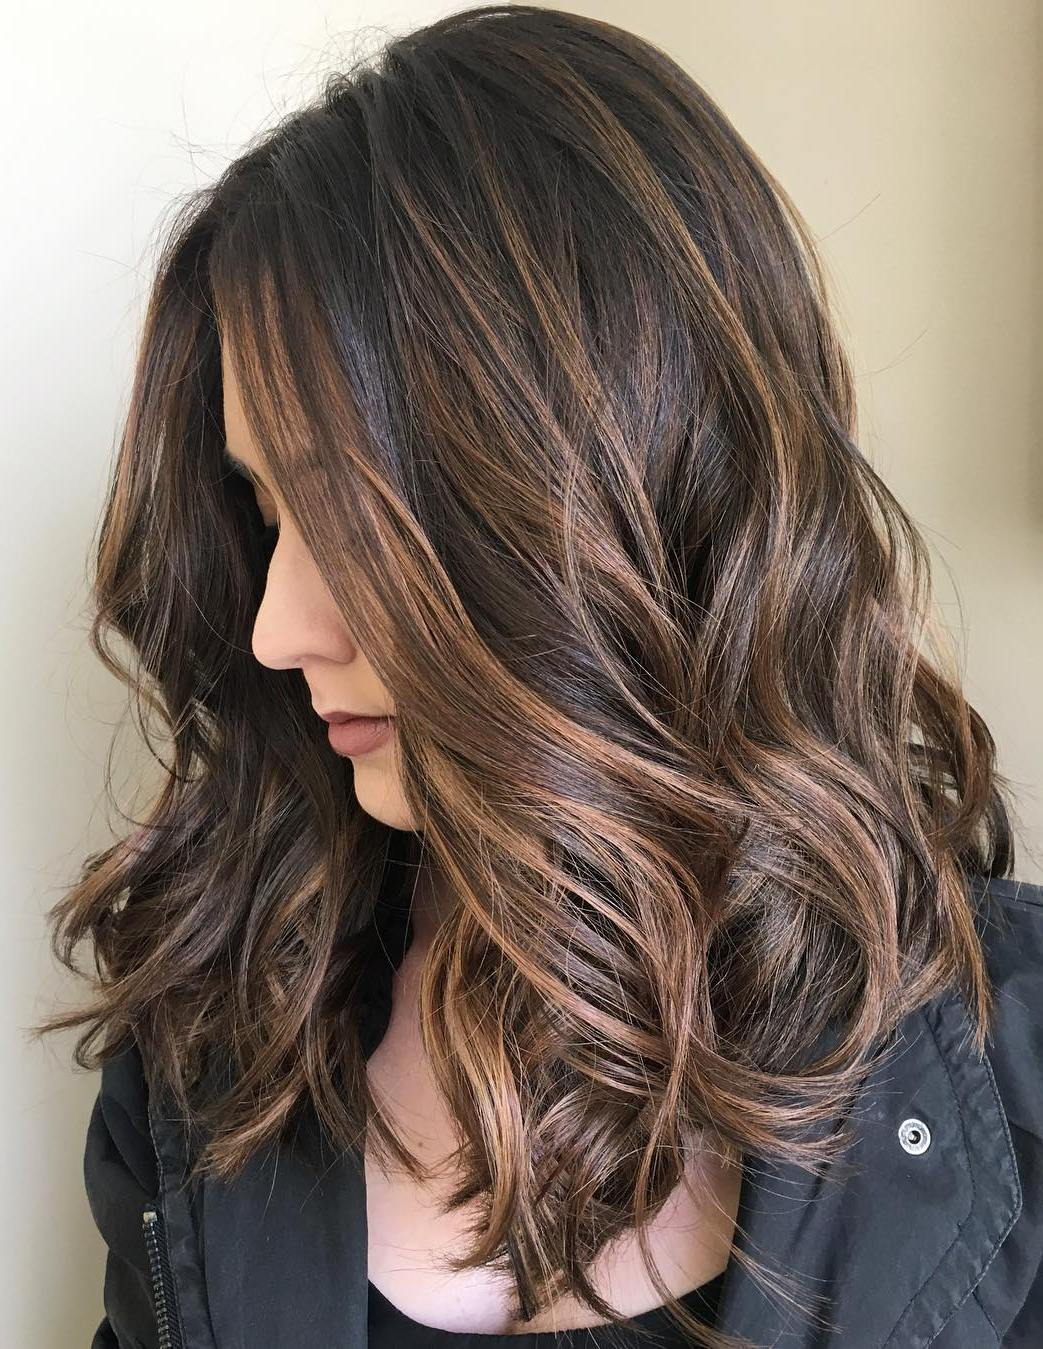 Long Bob Ombre Braun 70 Balayage Hair Color Ideas With Blonde Brown And Caramel Highlights